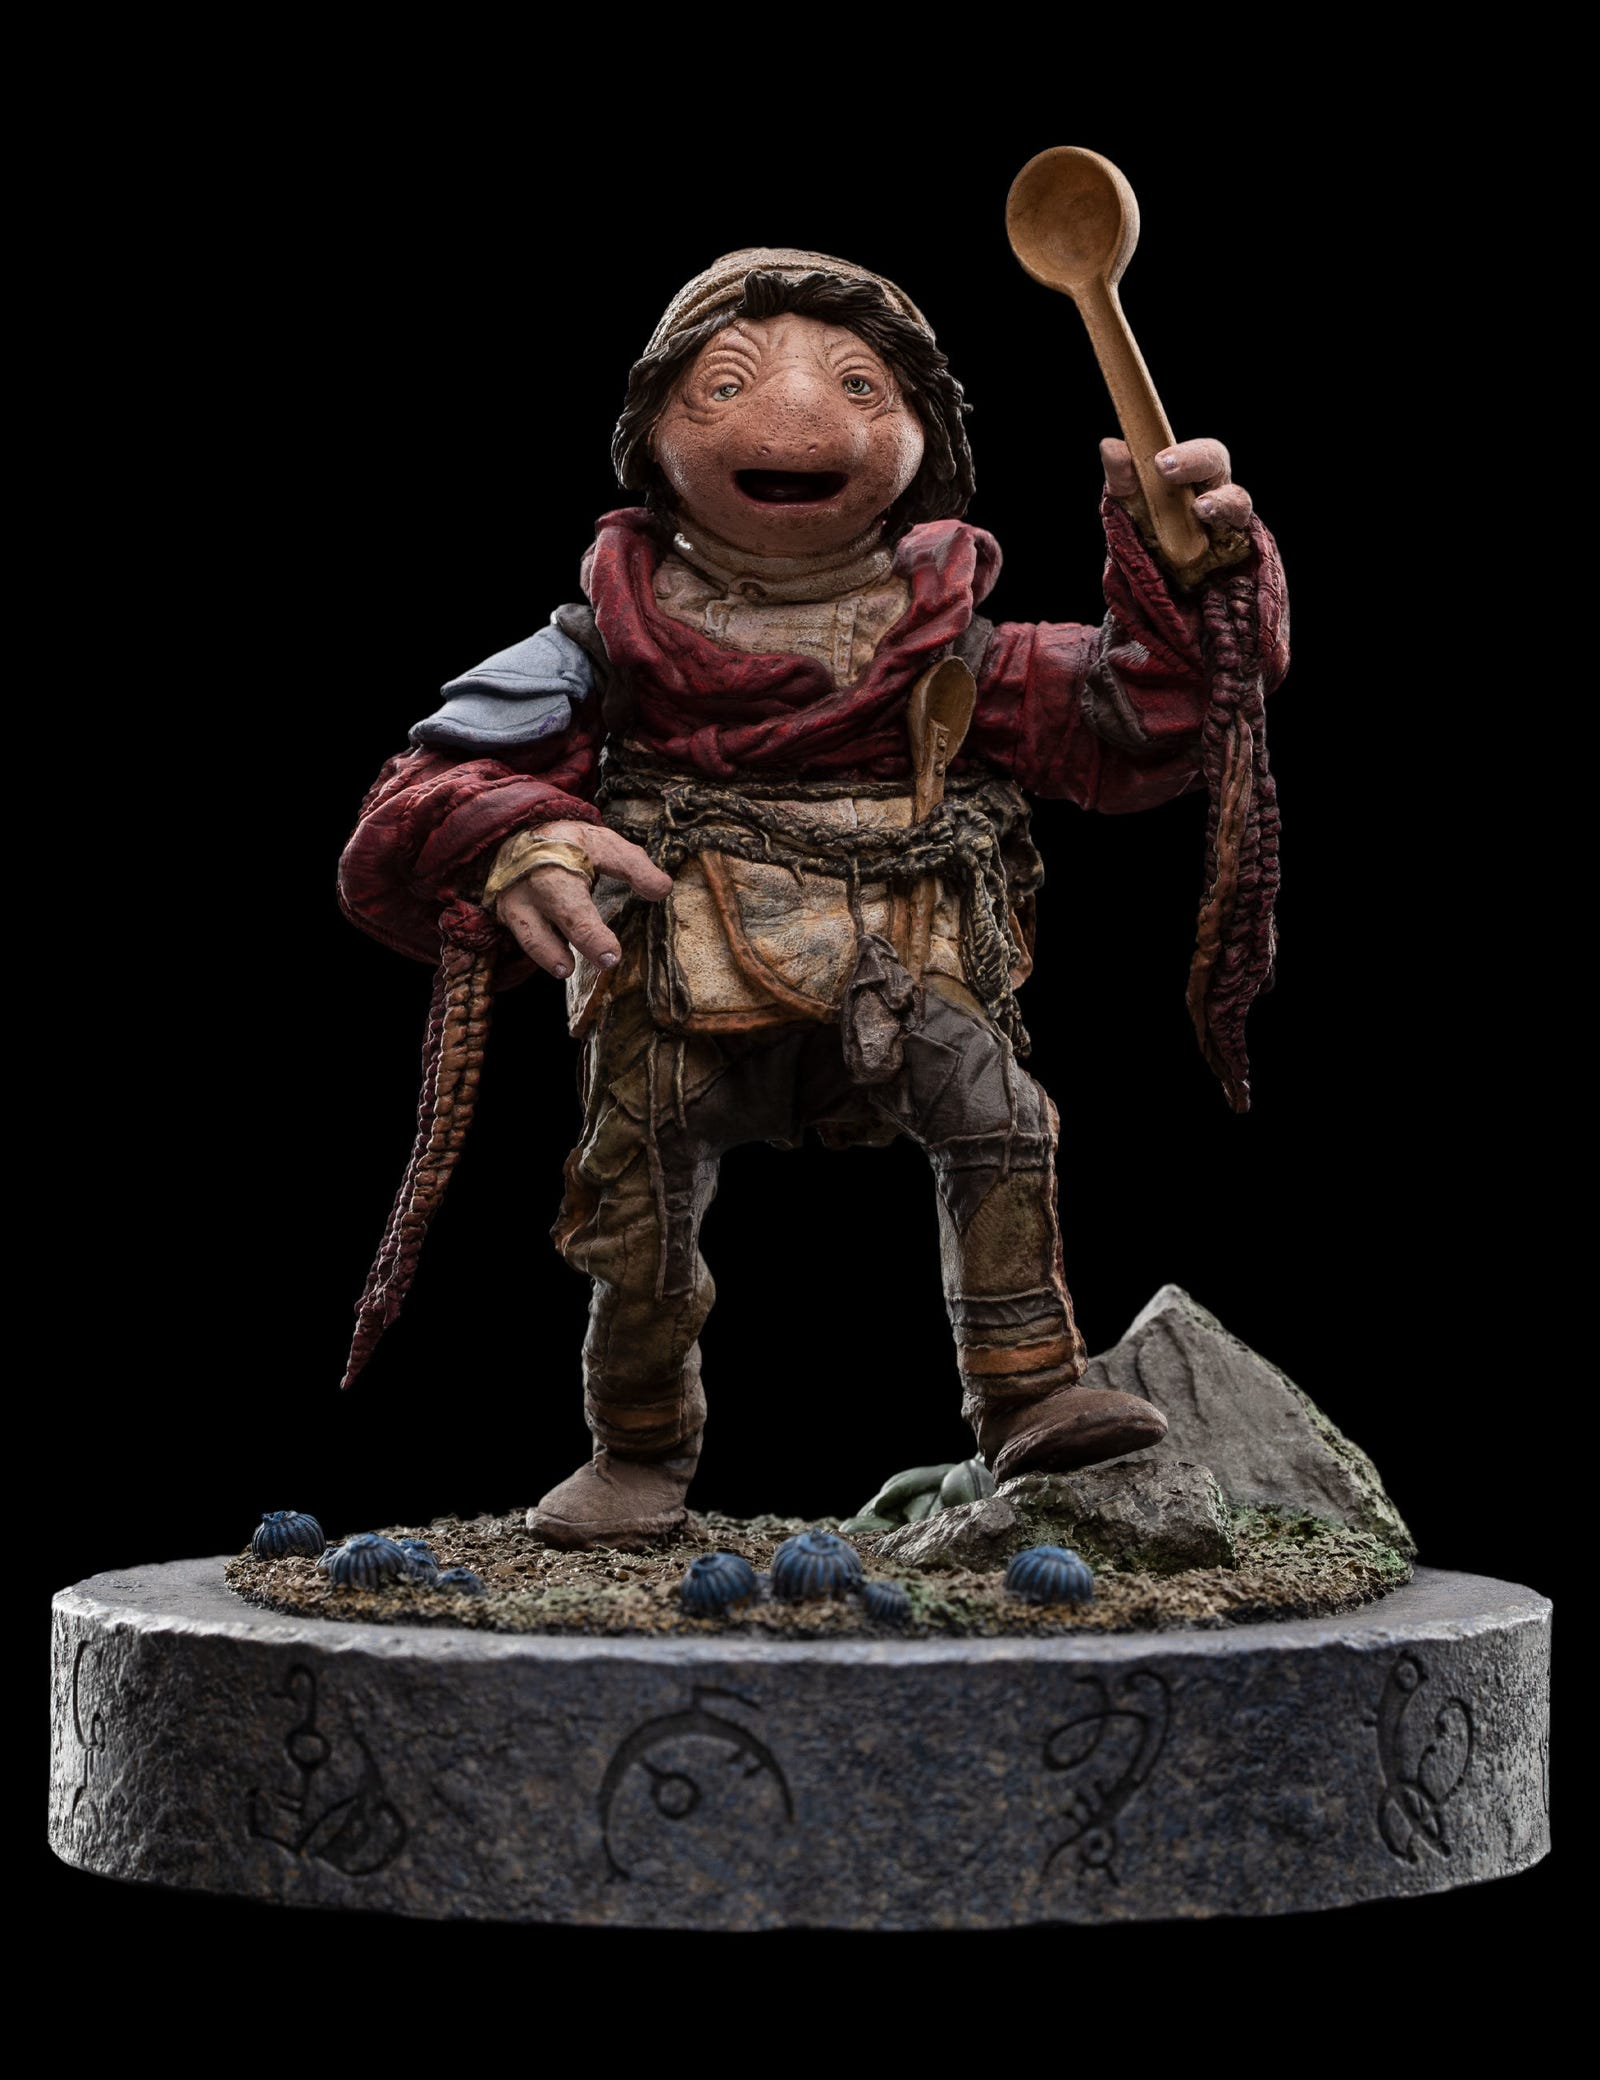 Hup the Podling 1:6 scale statue